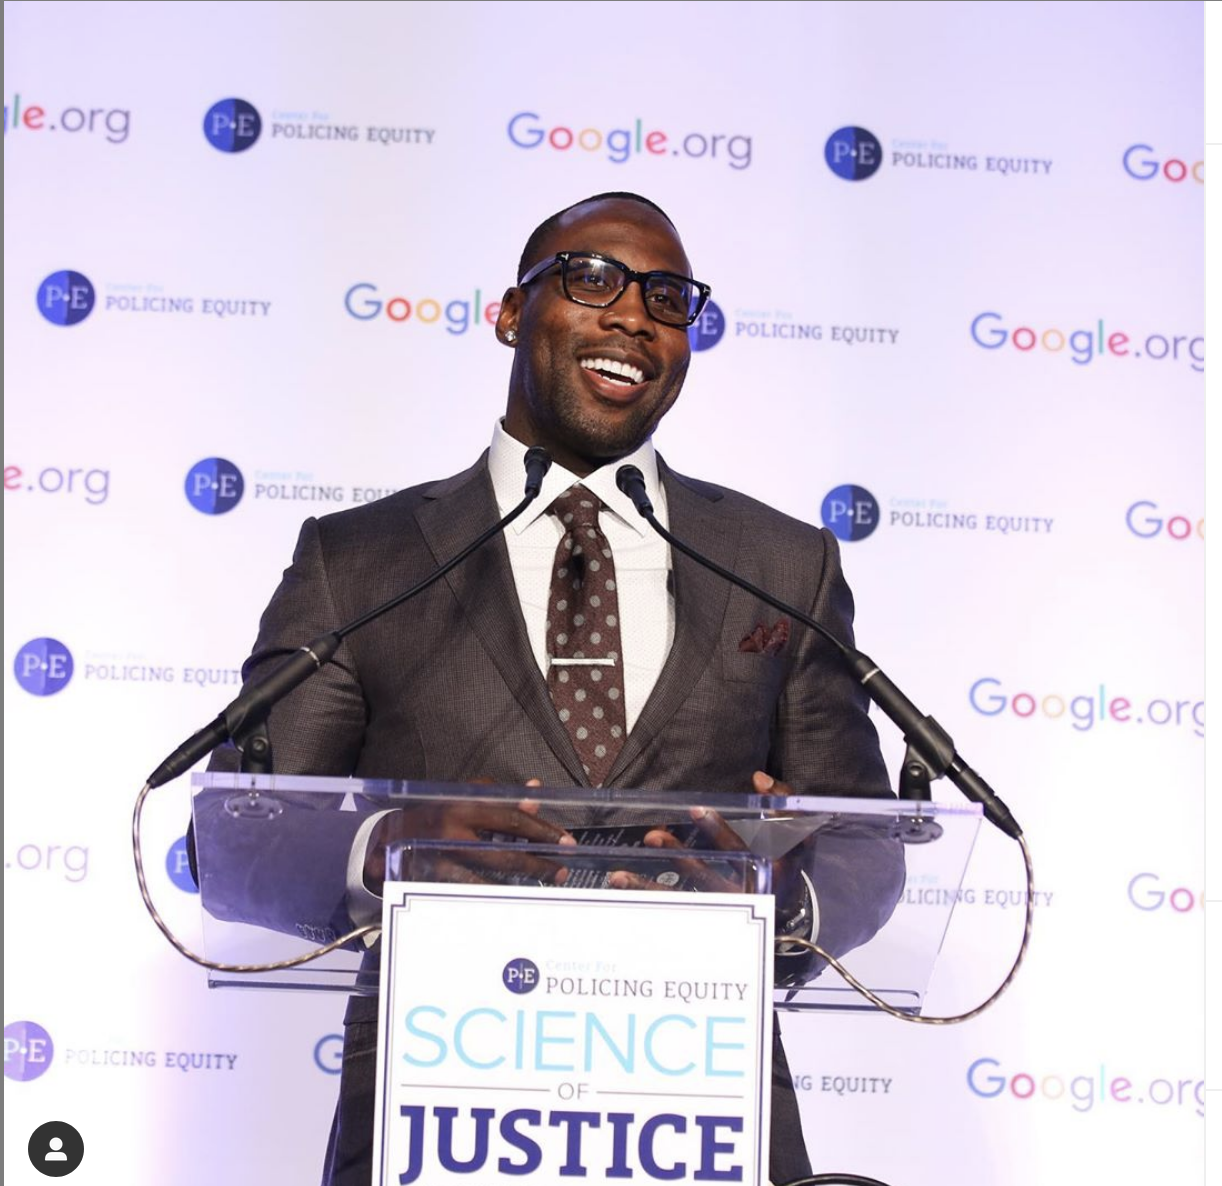 Anquan Boldin speaking at the 2018 Center for Policing Equity's Champion for Justice.